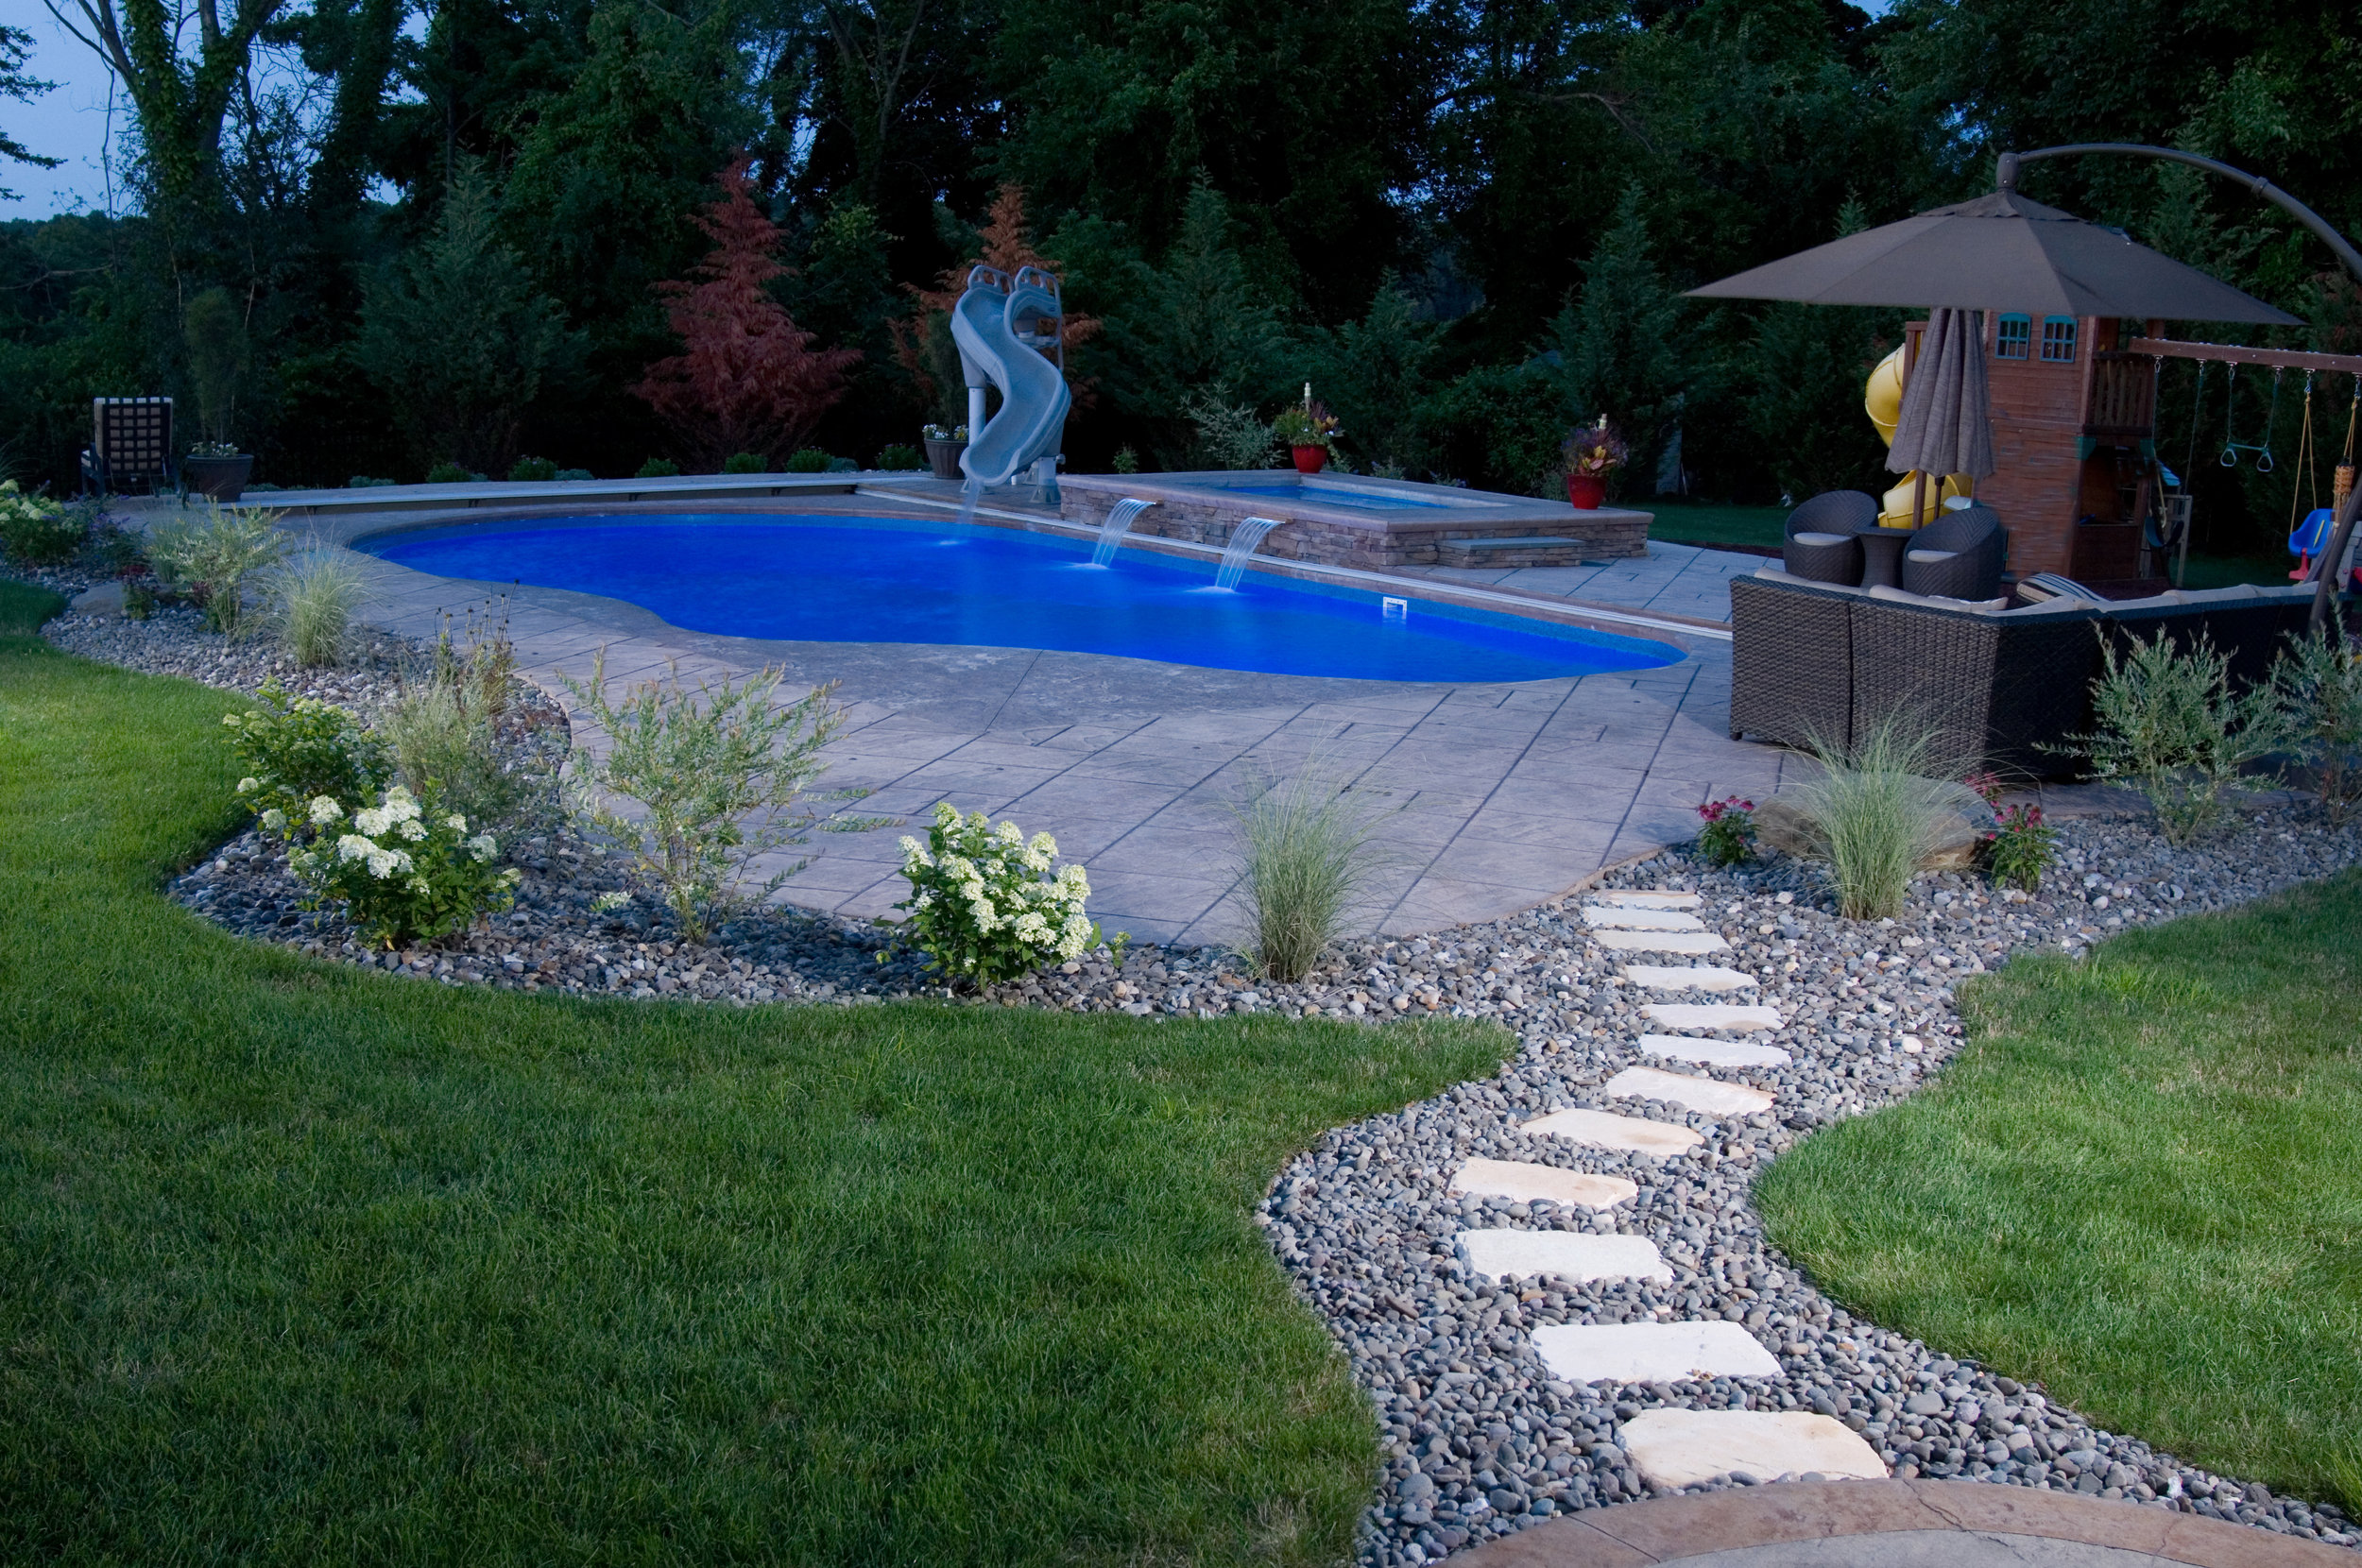 Lawn fertilization in Poughkeepsie and Wappingers Falls, NY areas